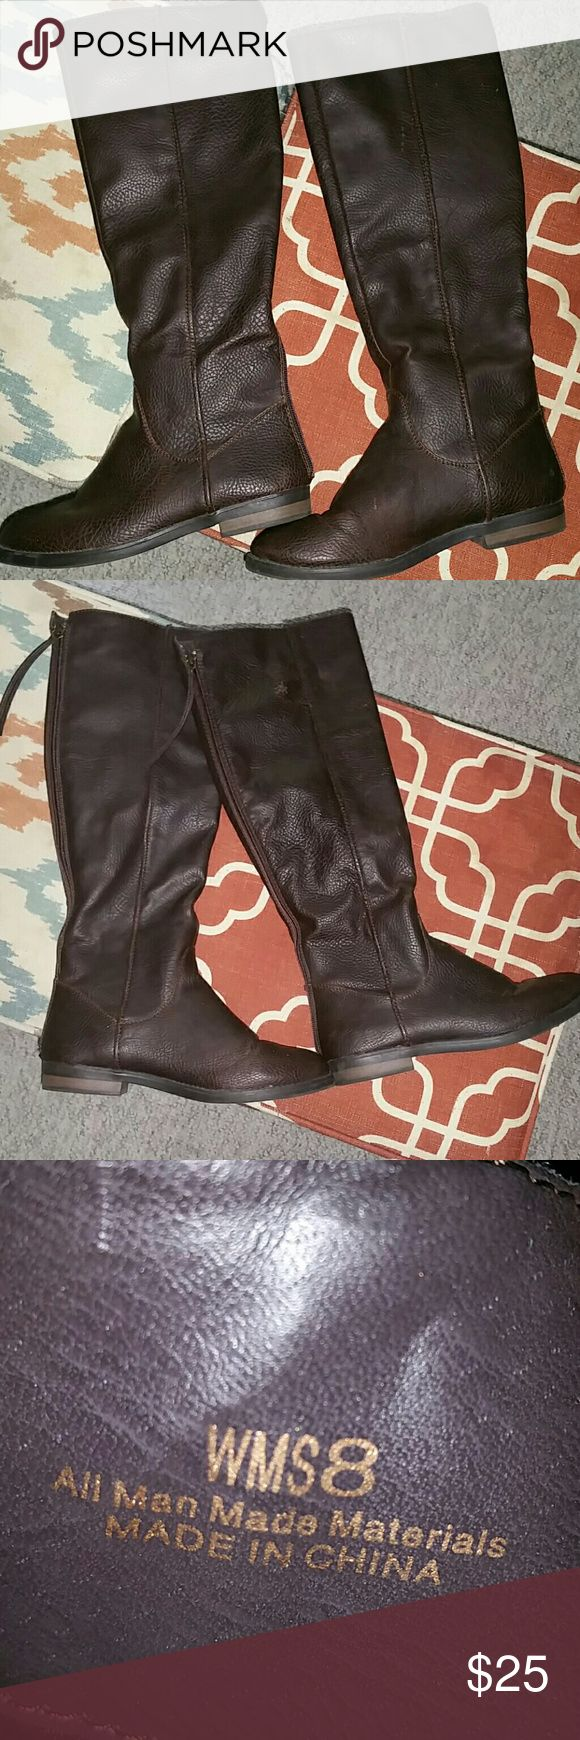 Brown riding boots final sale brown riding boot style with zipper enclosure. Super comfy and easy to care for.used condition Shoes